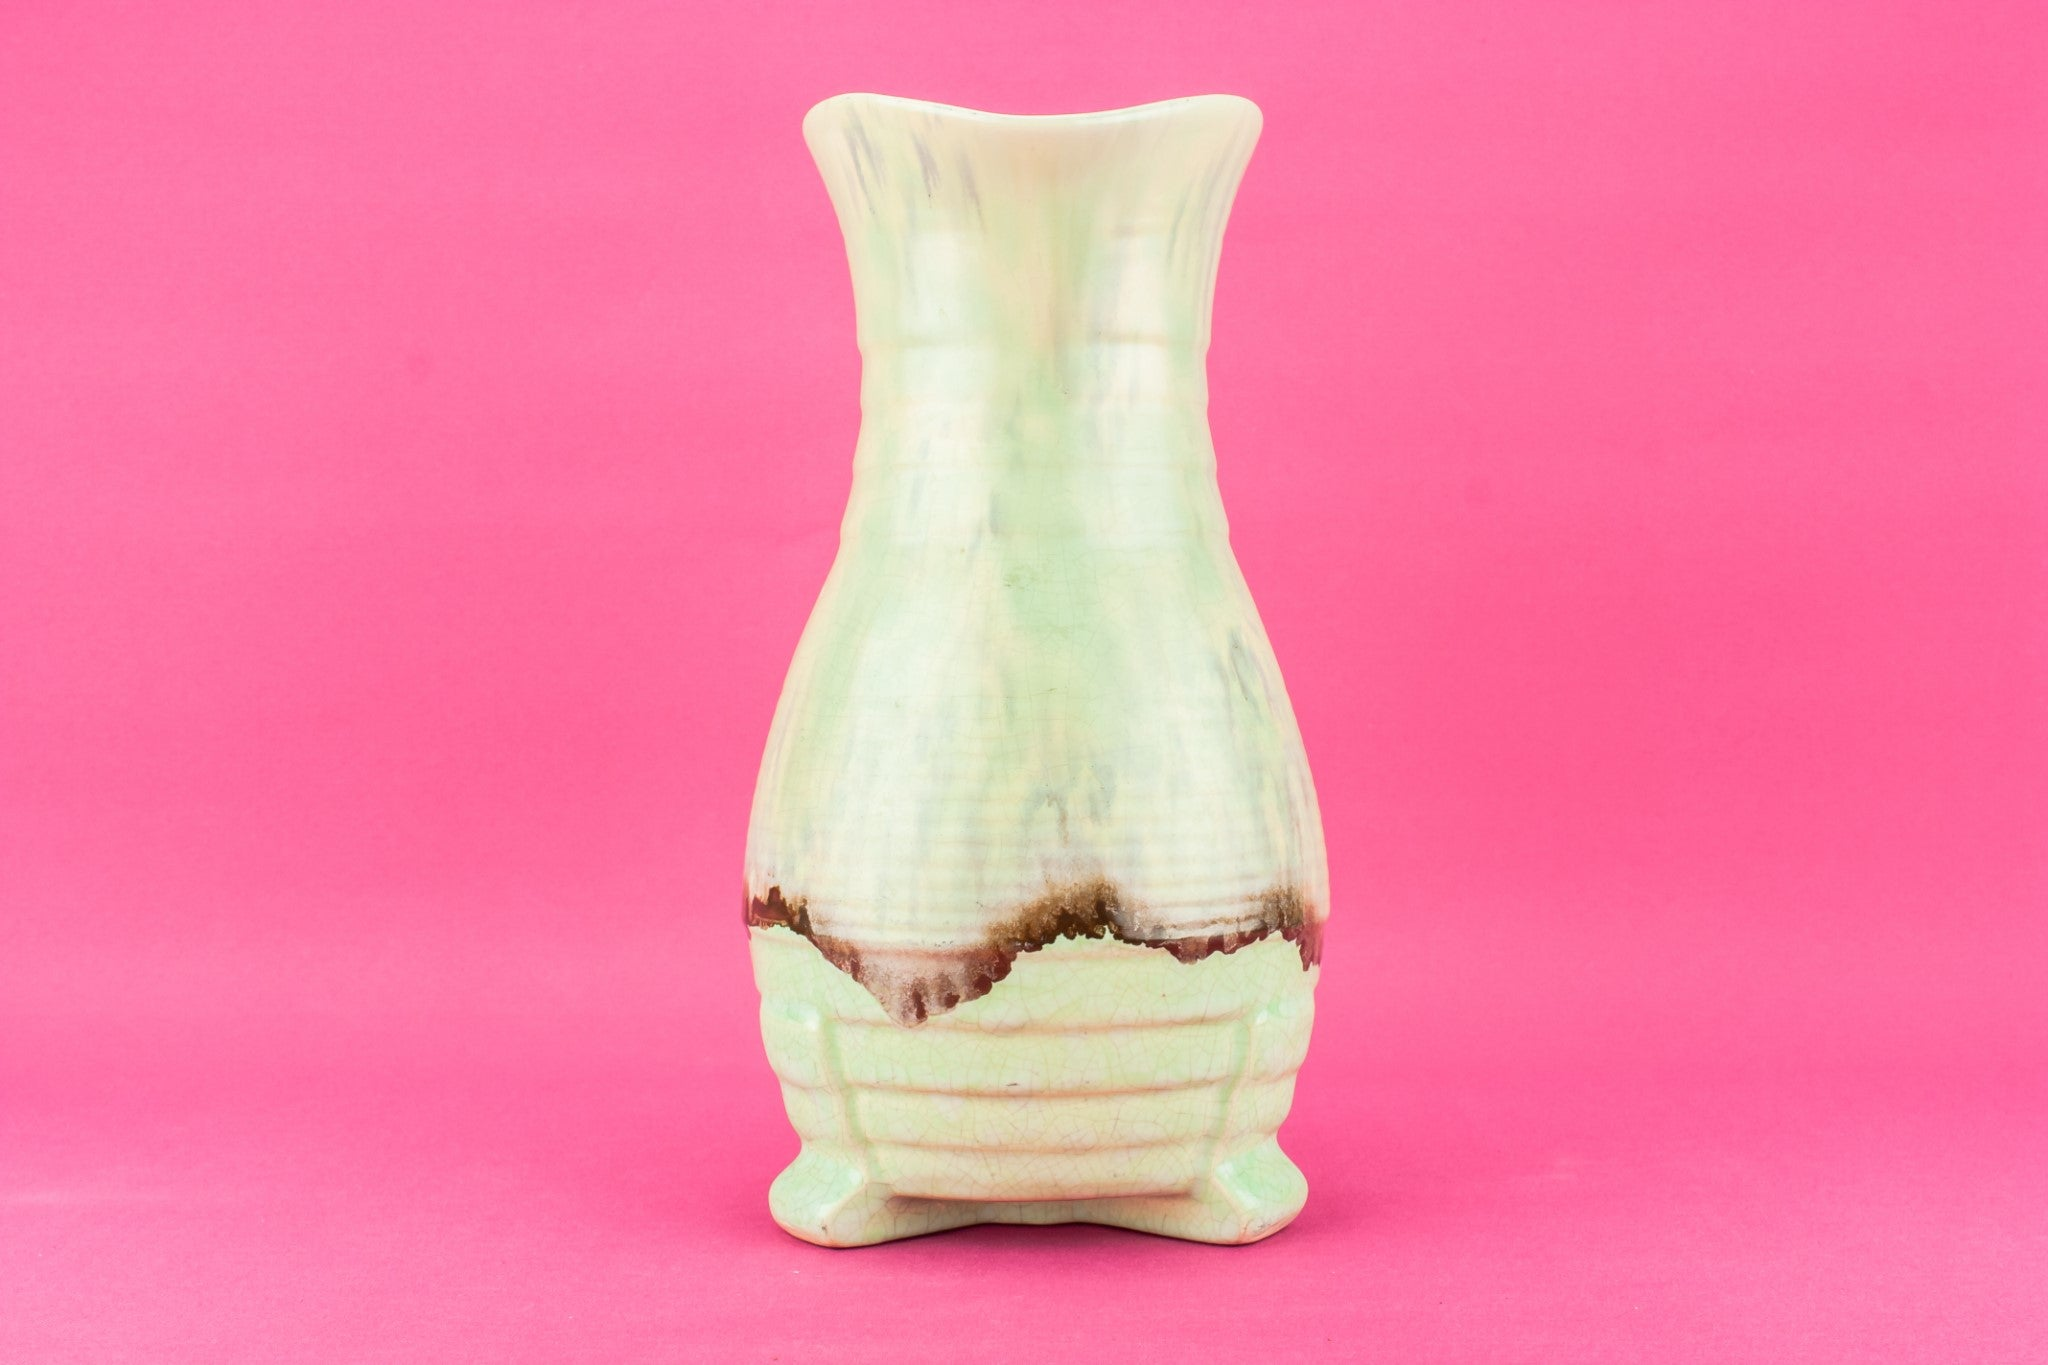 Art Deco pottery jug